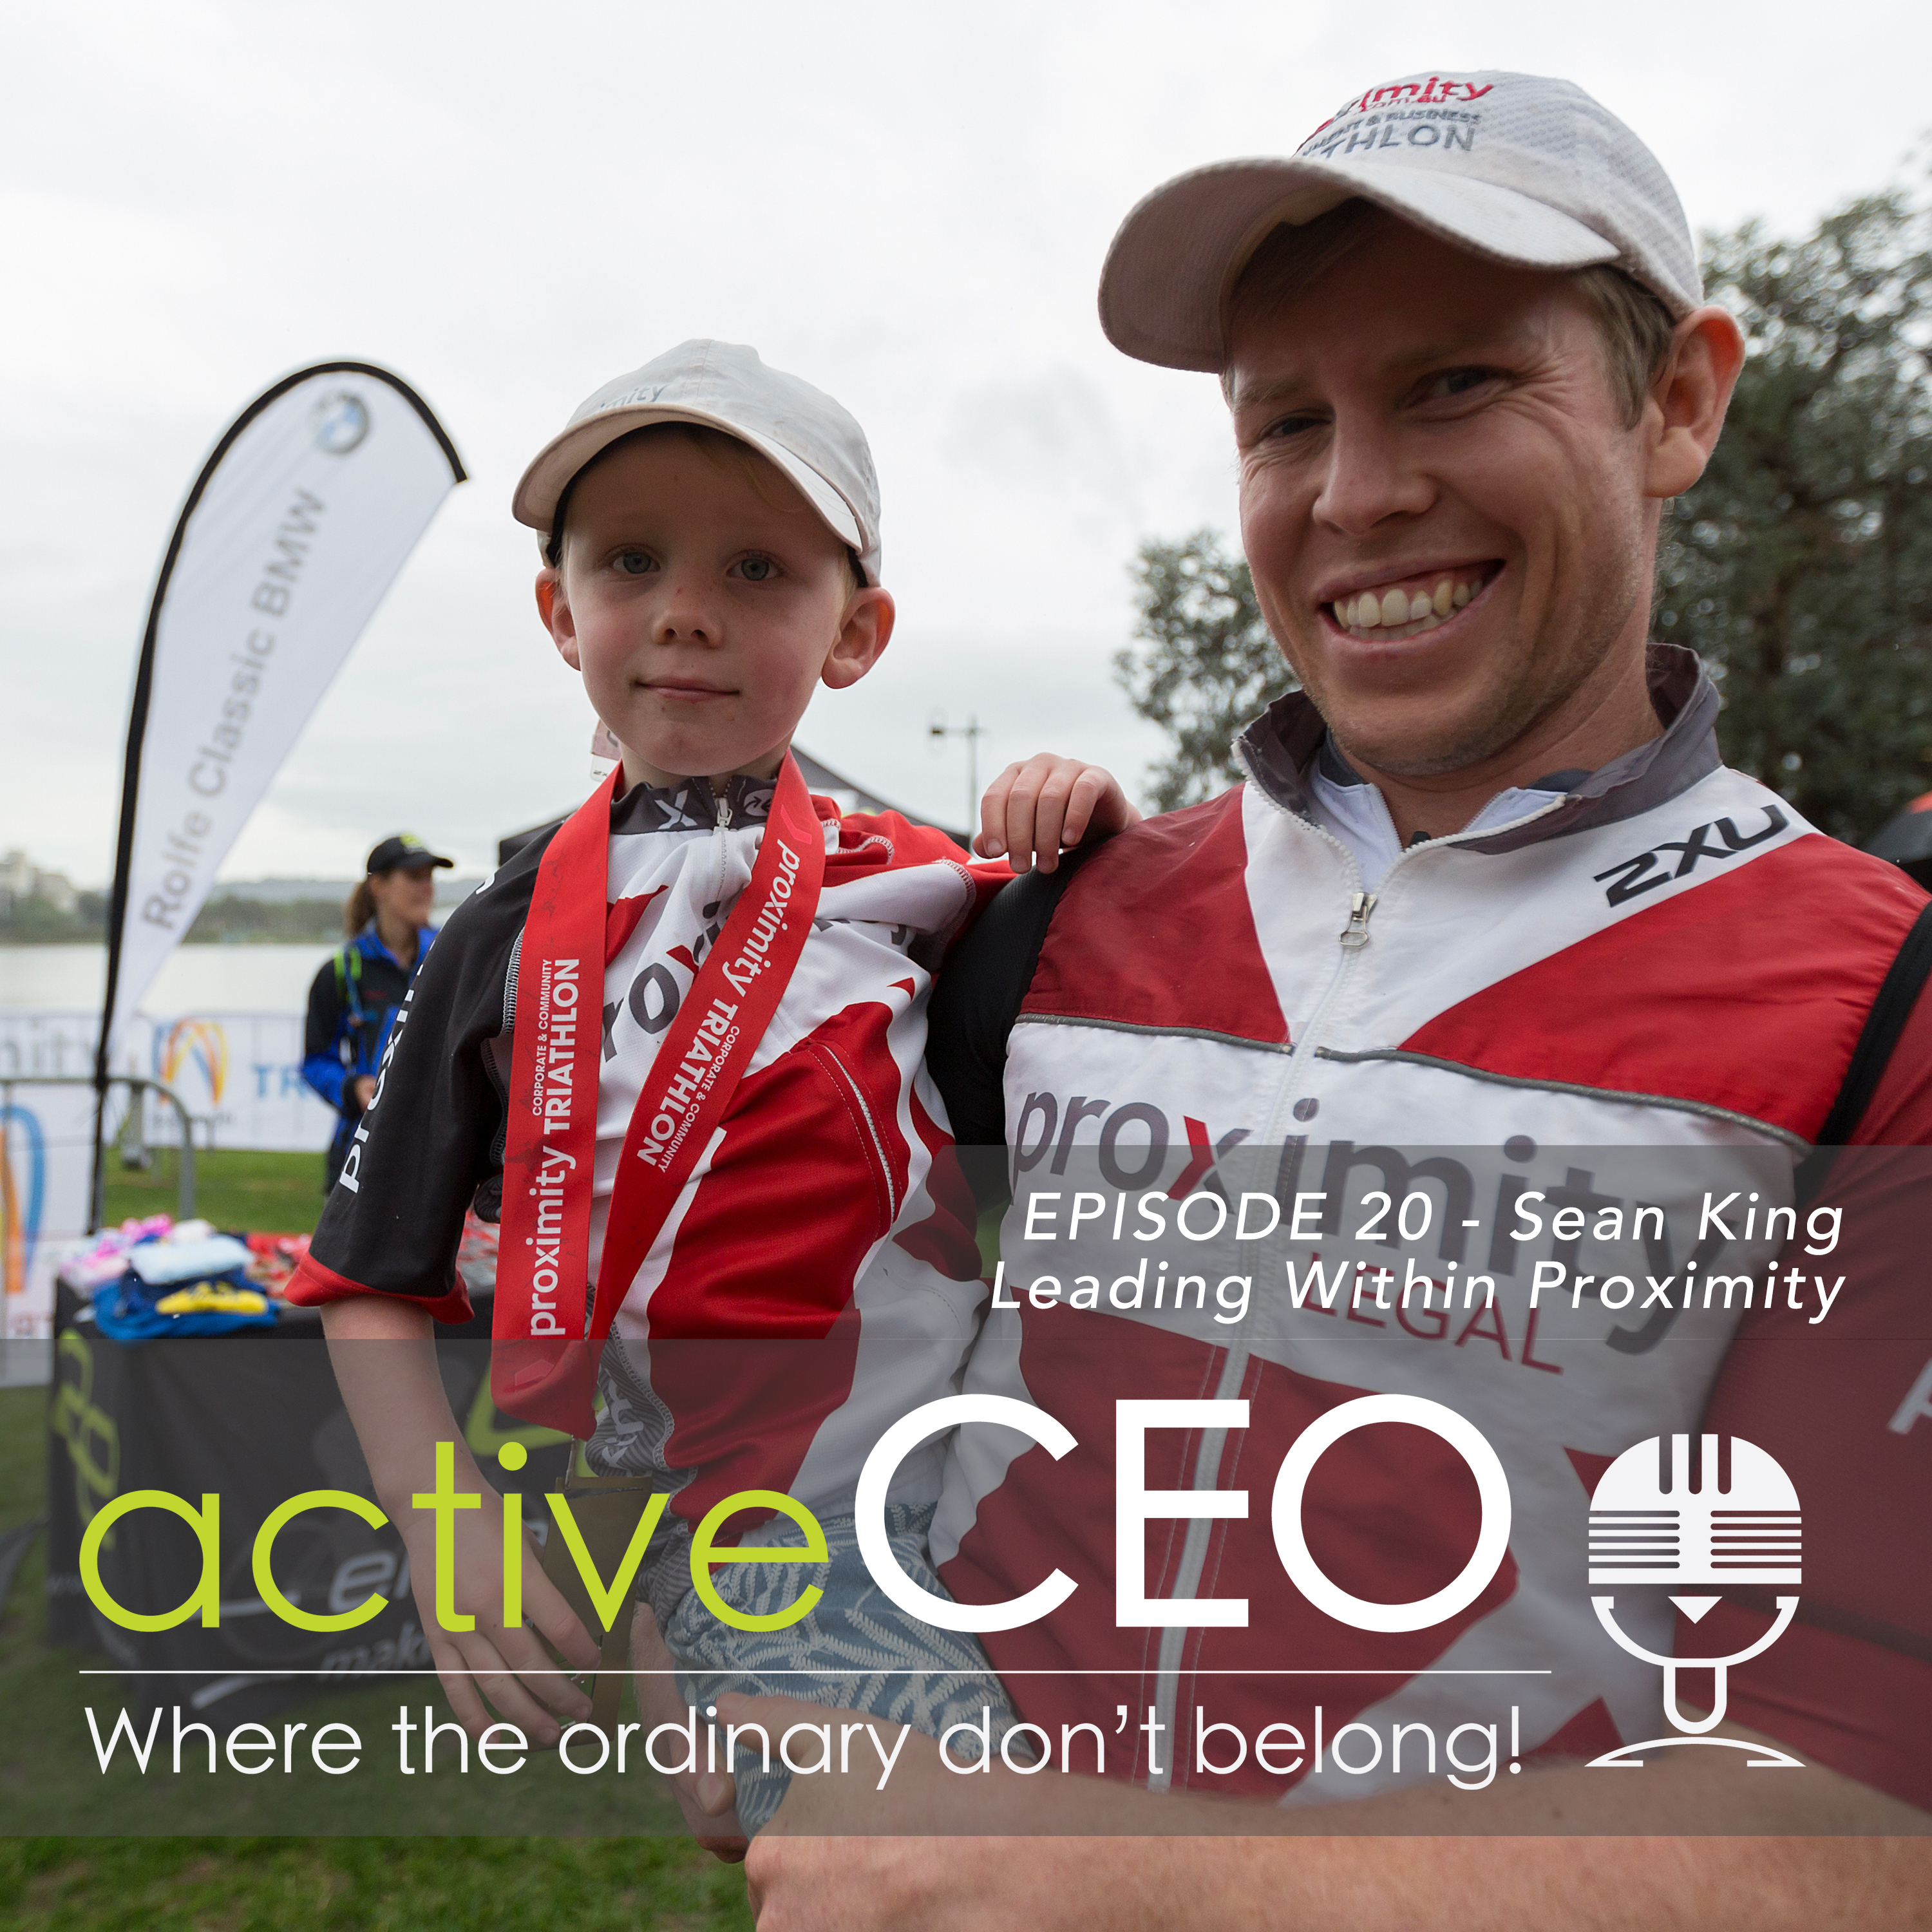 Sean King (Proximity) – Leading Within Proximity